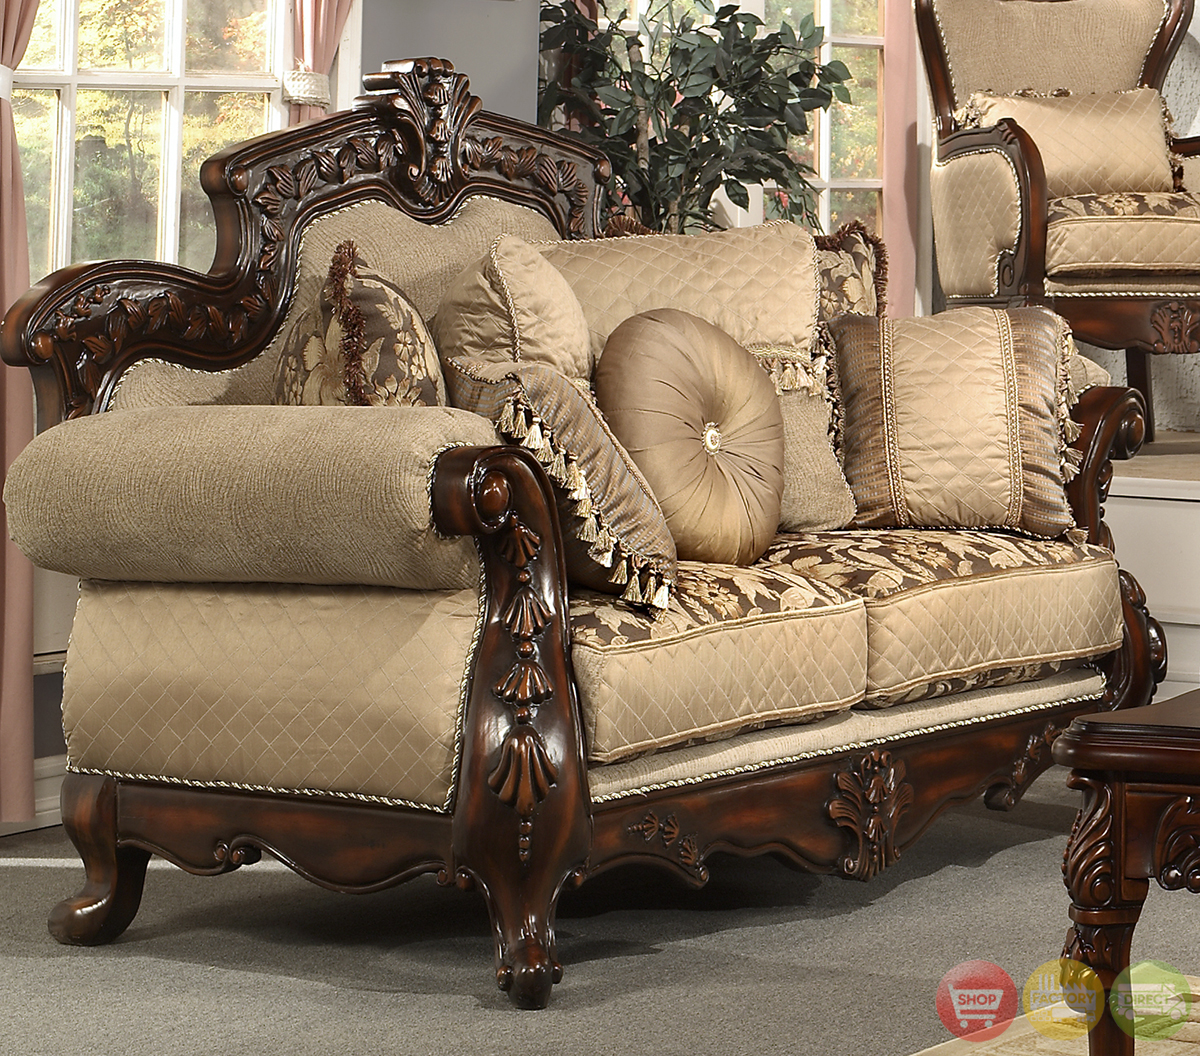 Formal living room antique style luxury sofa set hd 296 for Formal sofa sets